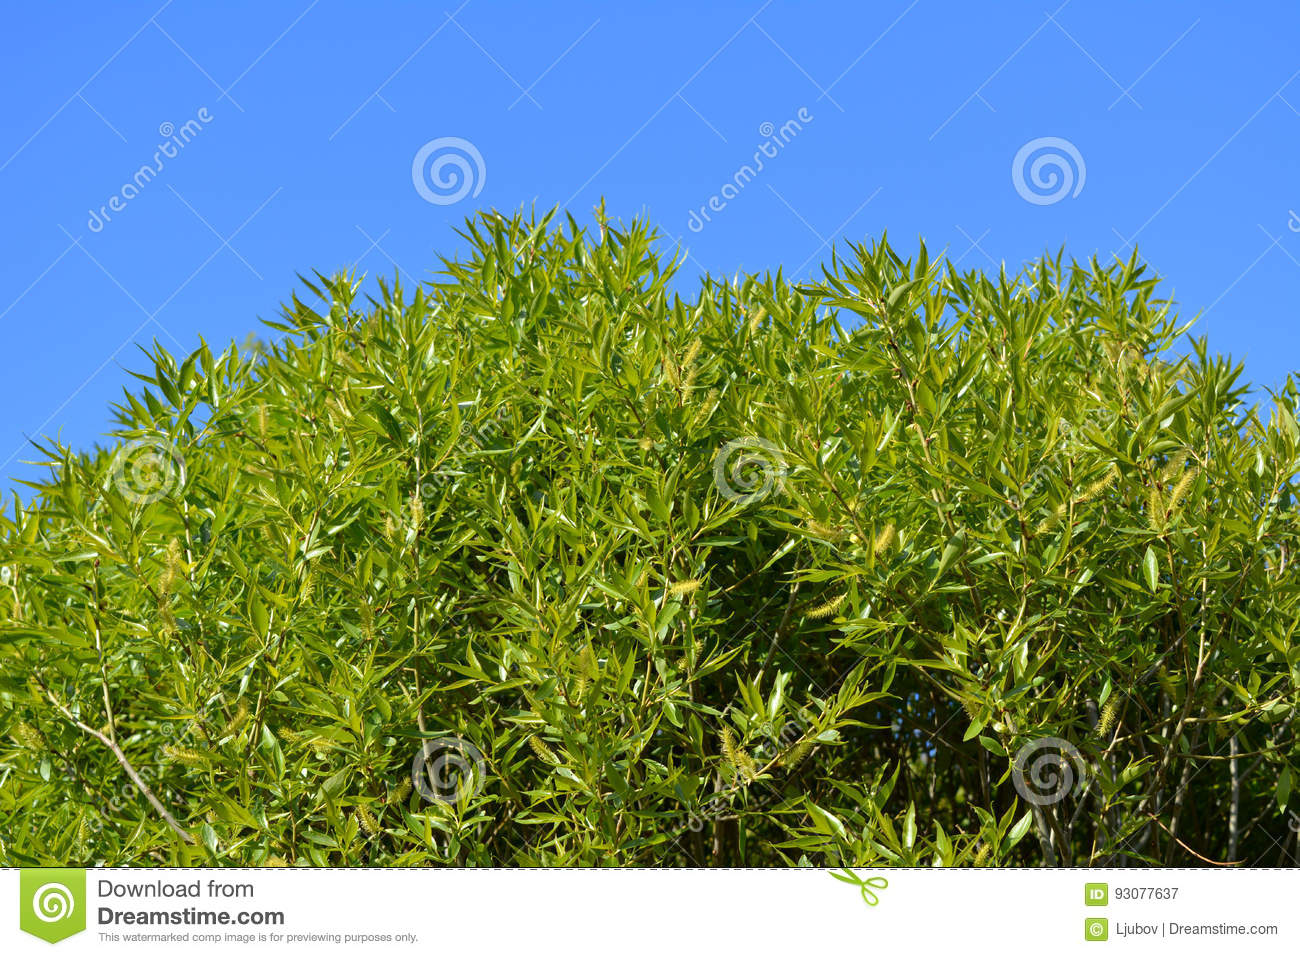 Green willow foliage against blue sky. Branches with young leaves